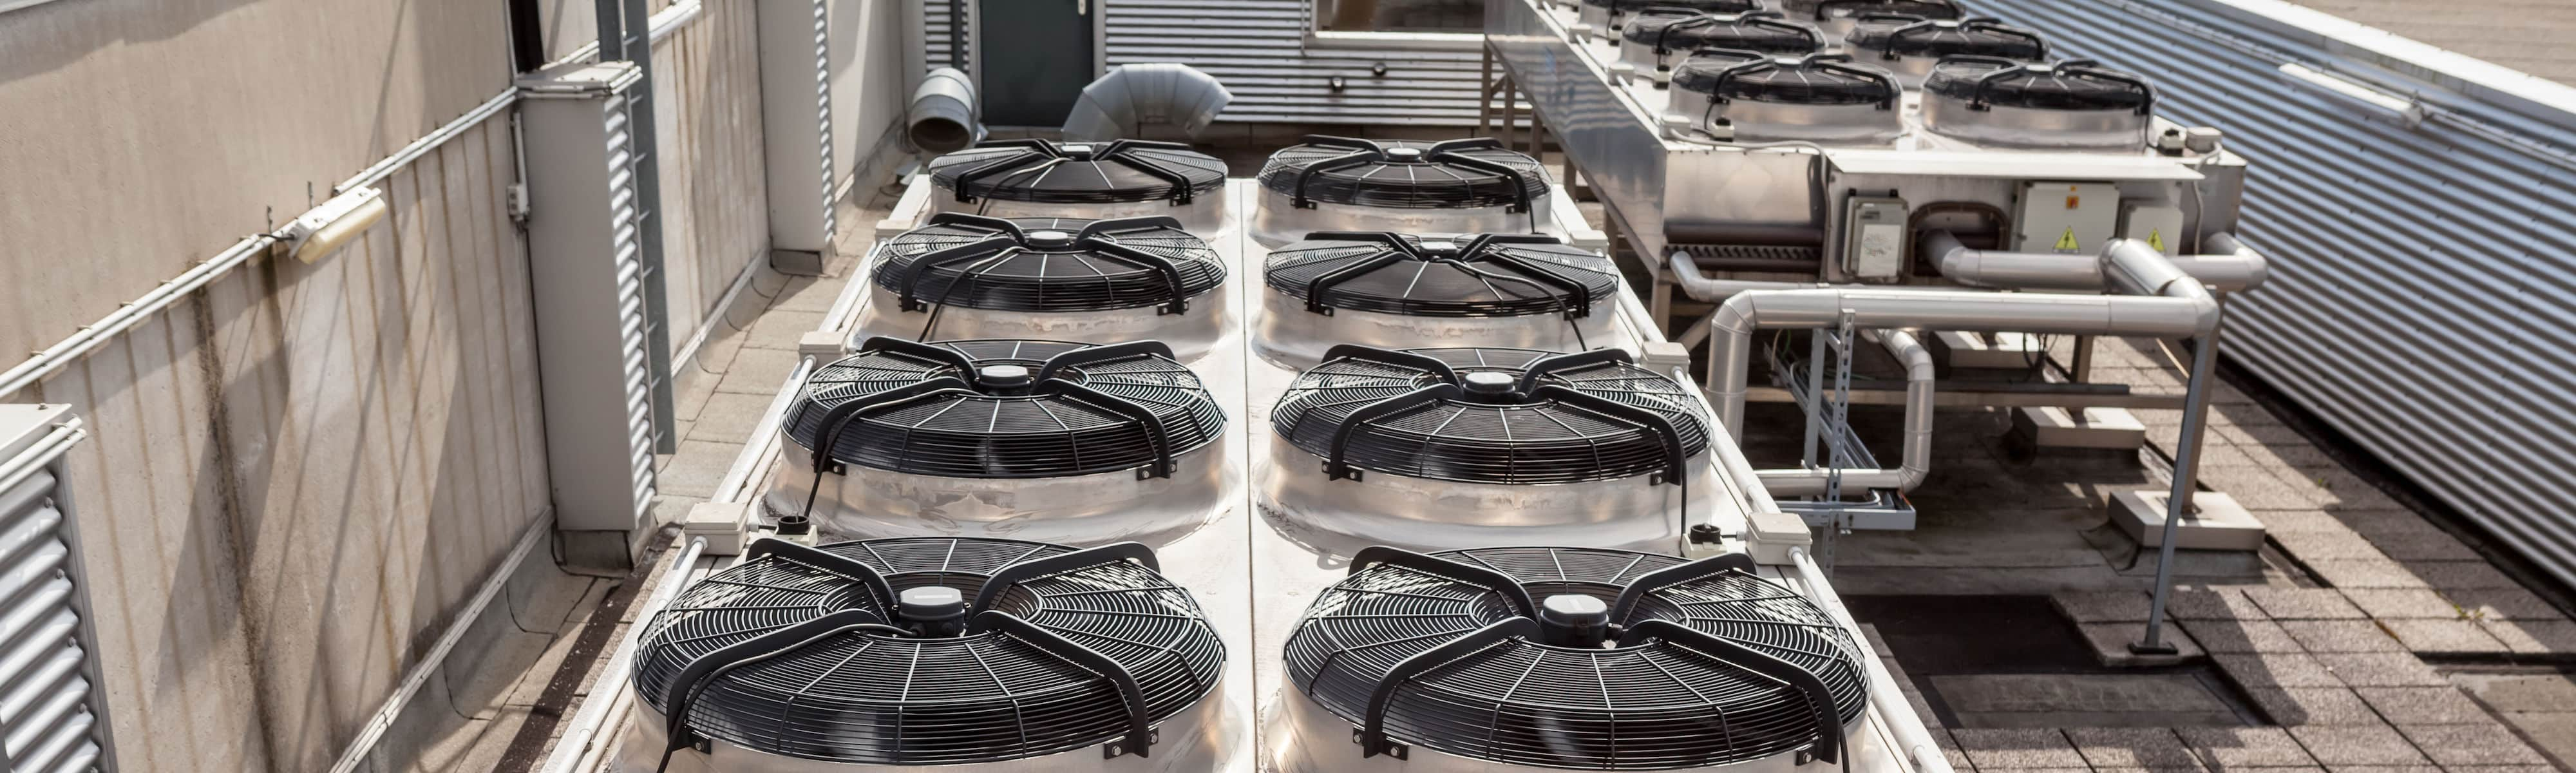 Commercial Cooling | Air Conditioning, Repair, Installation